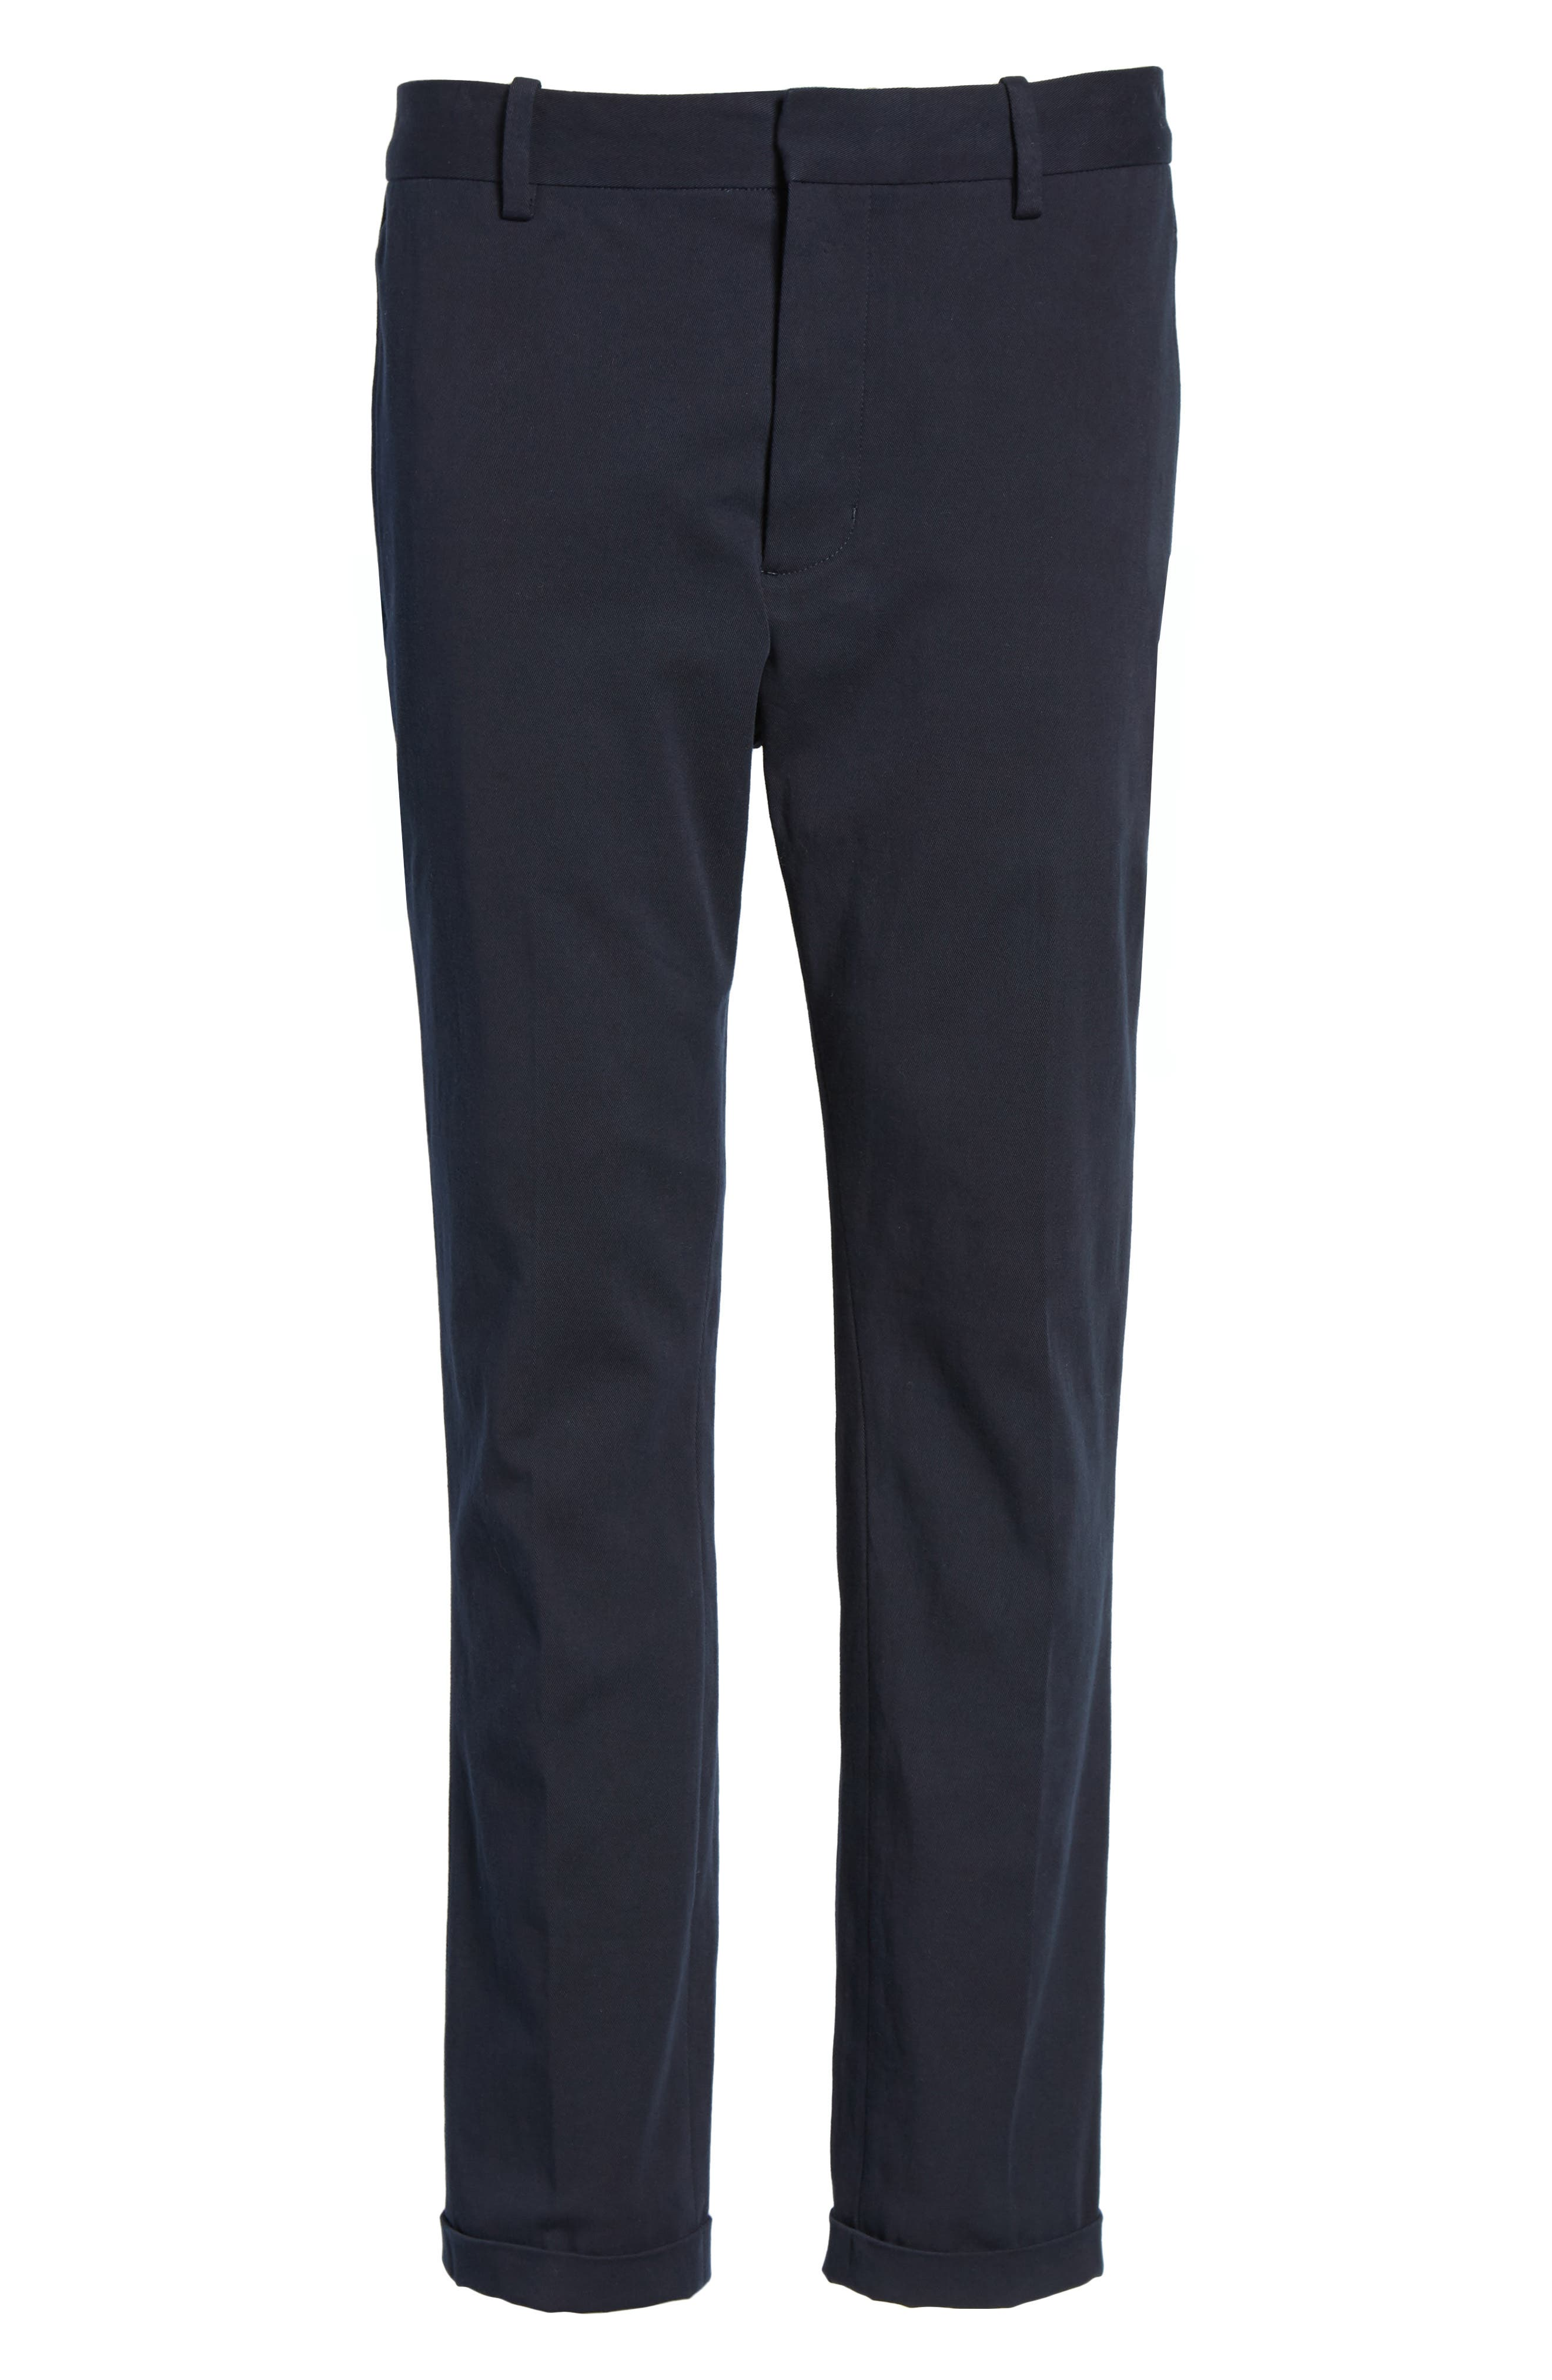 Cropped Slim Fit Trousers,                             Alternate thumbnail 6, color,                             403